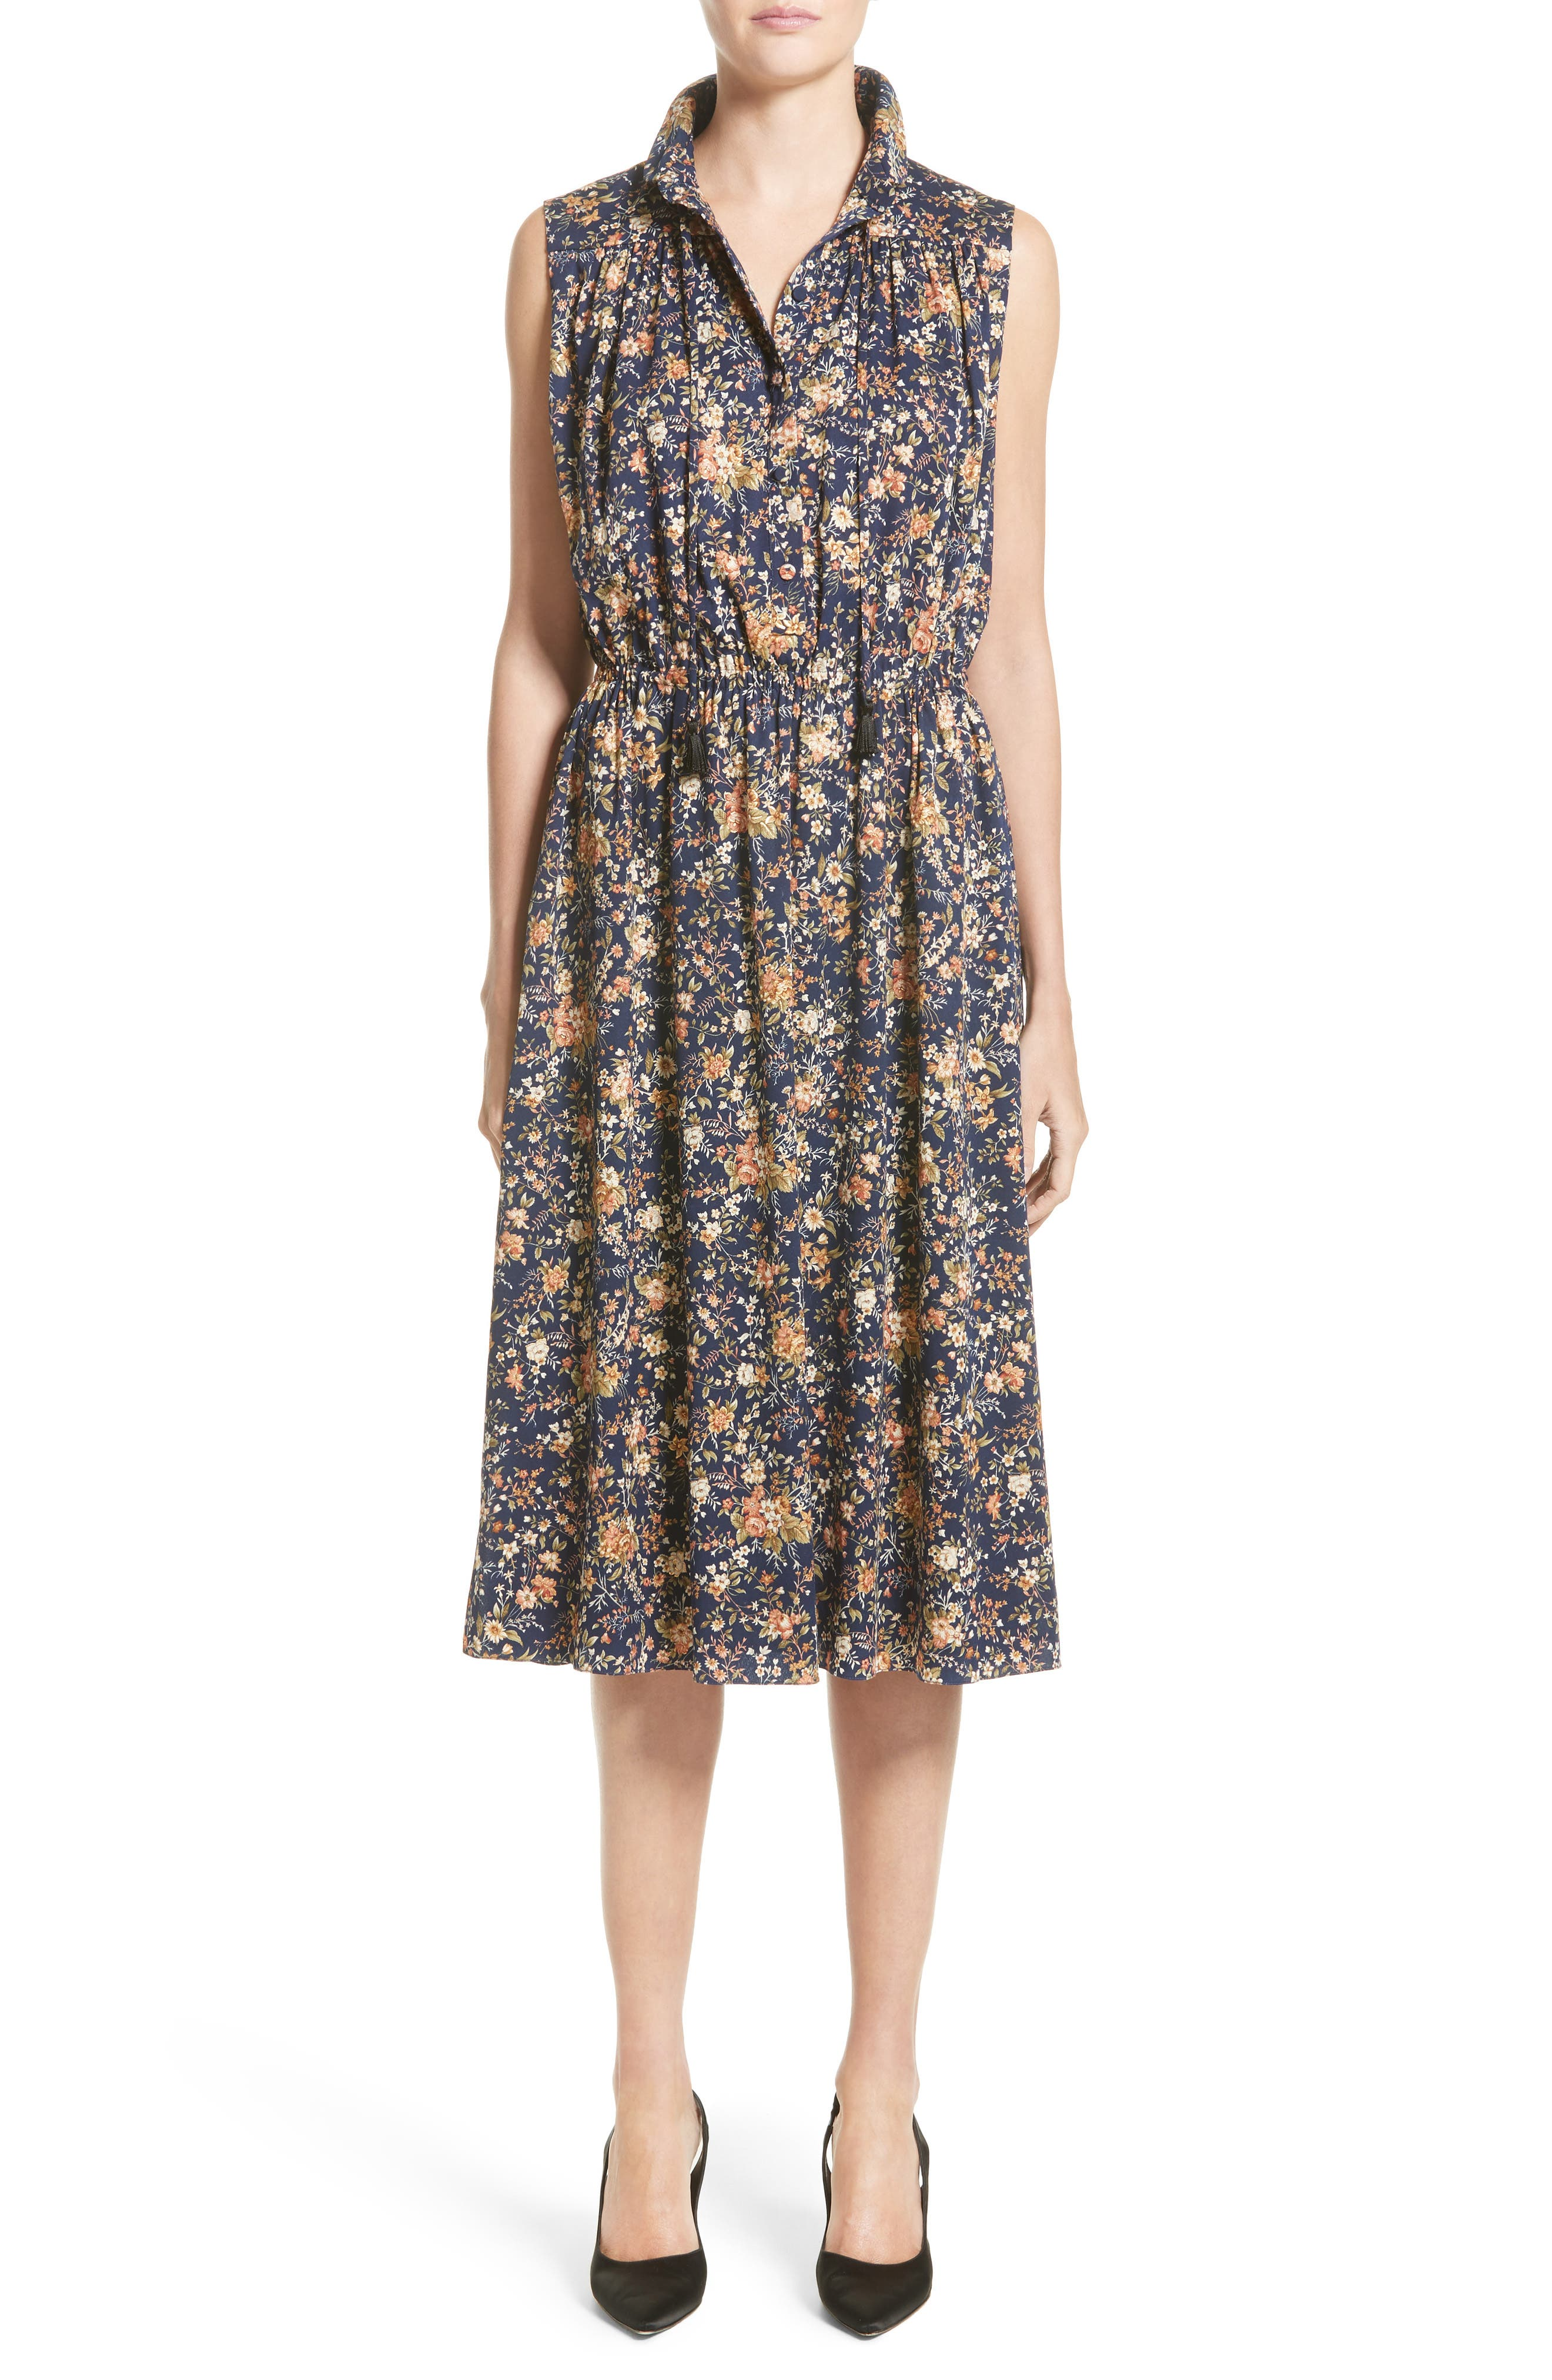 Alternate Image 1 Selected - Adam Lippes Floral Print Silk Dress